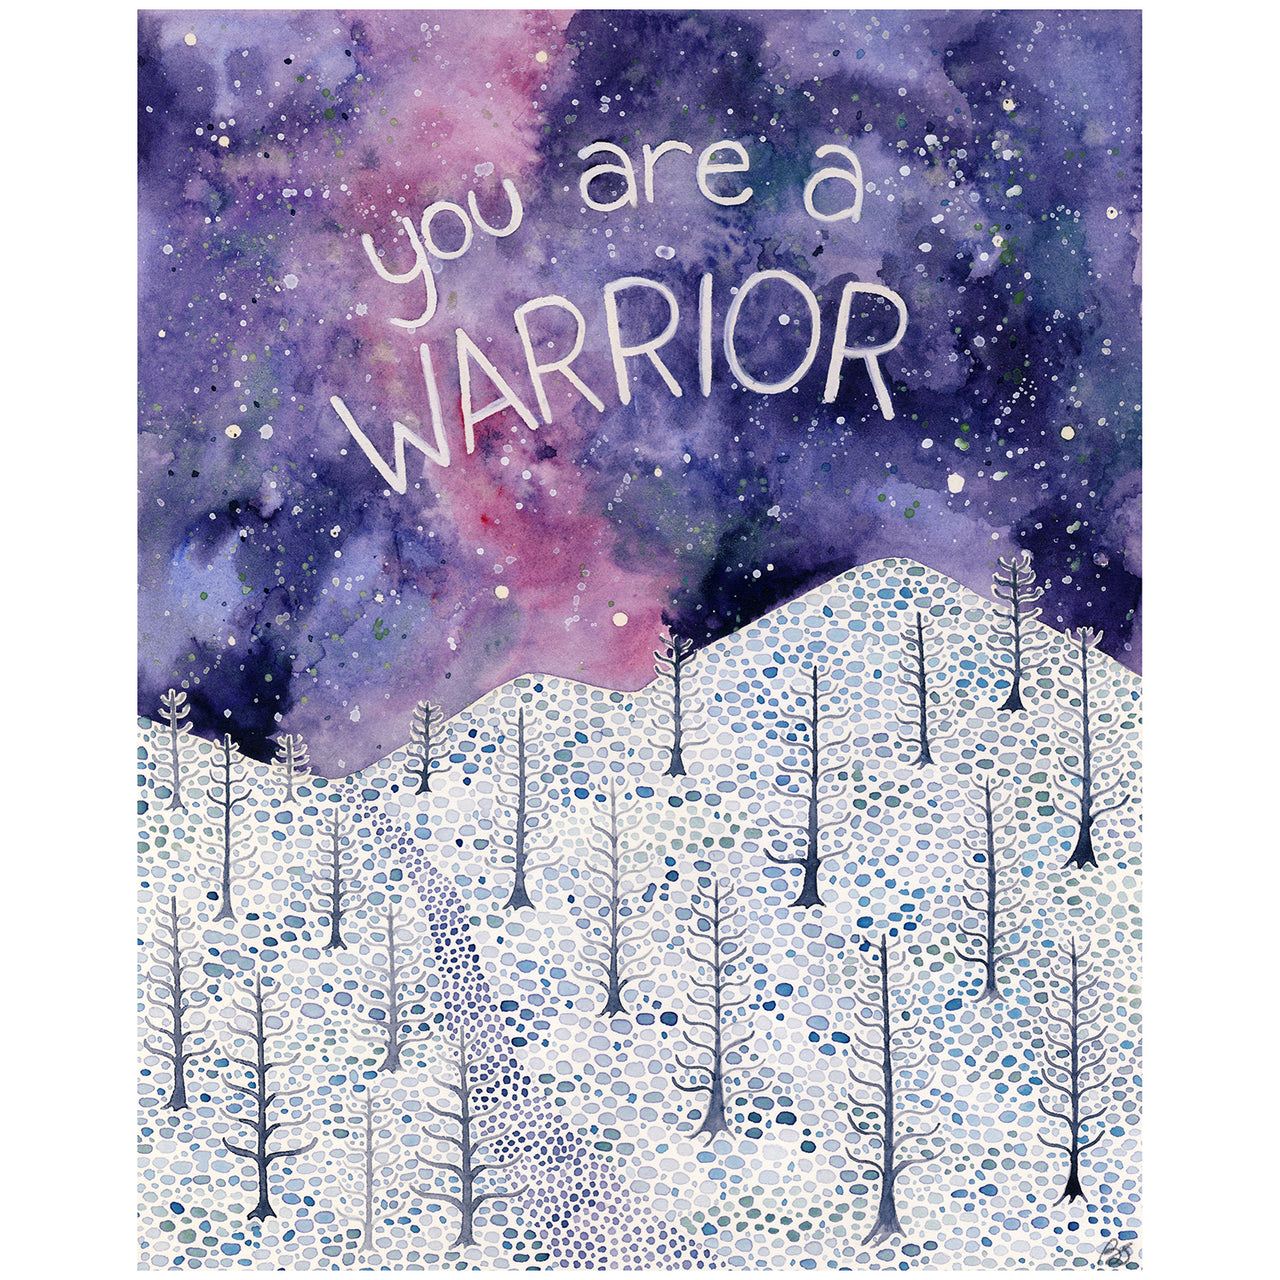 You Are A Warrior original watercolor painting by Yardia